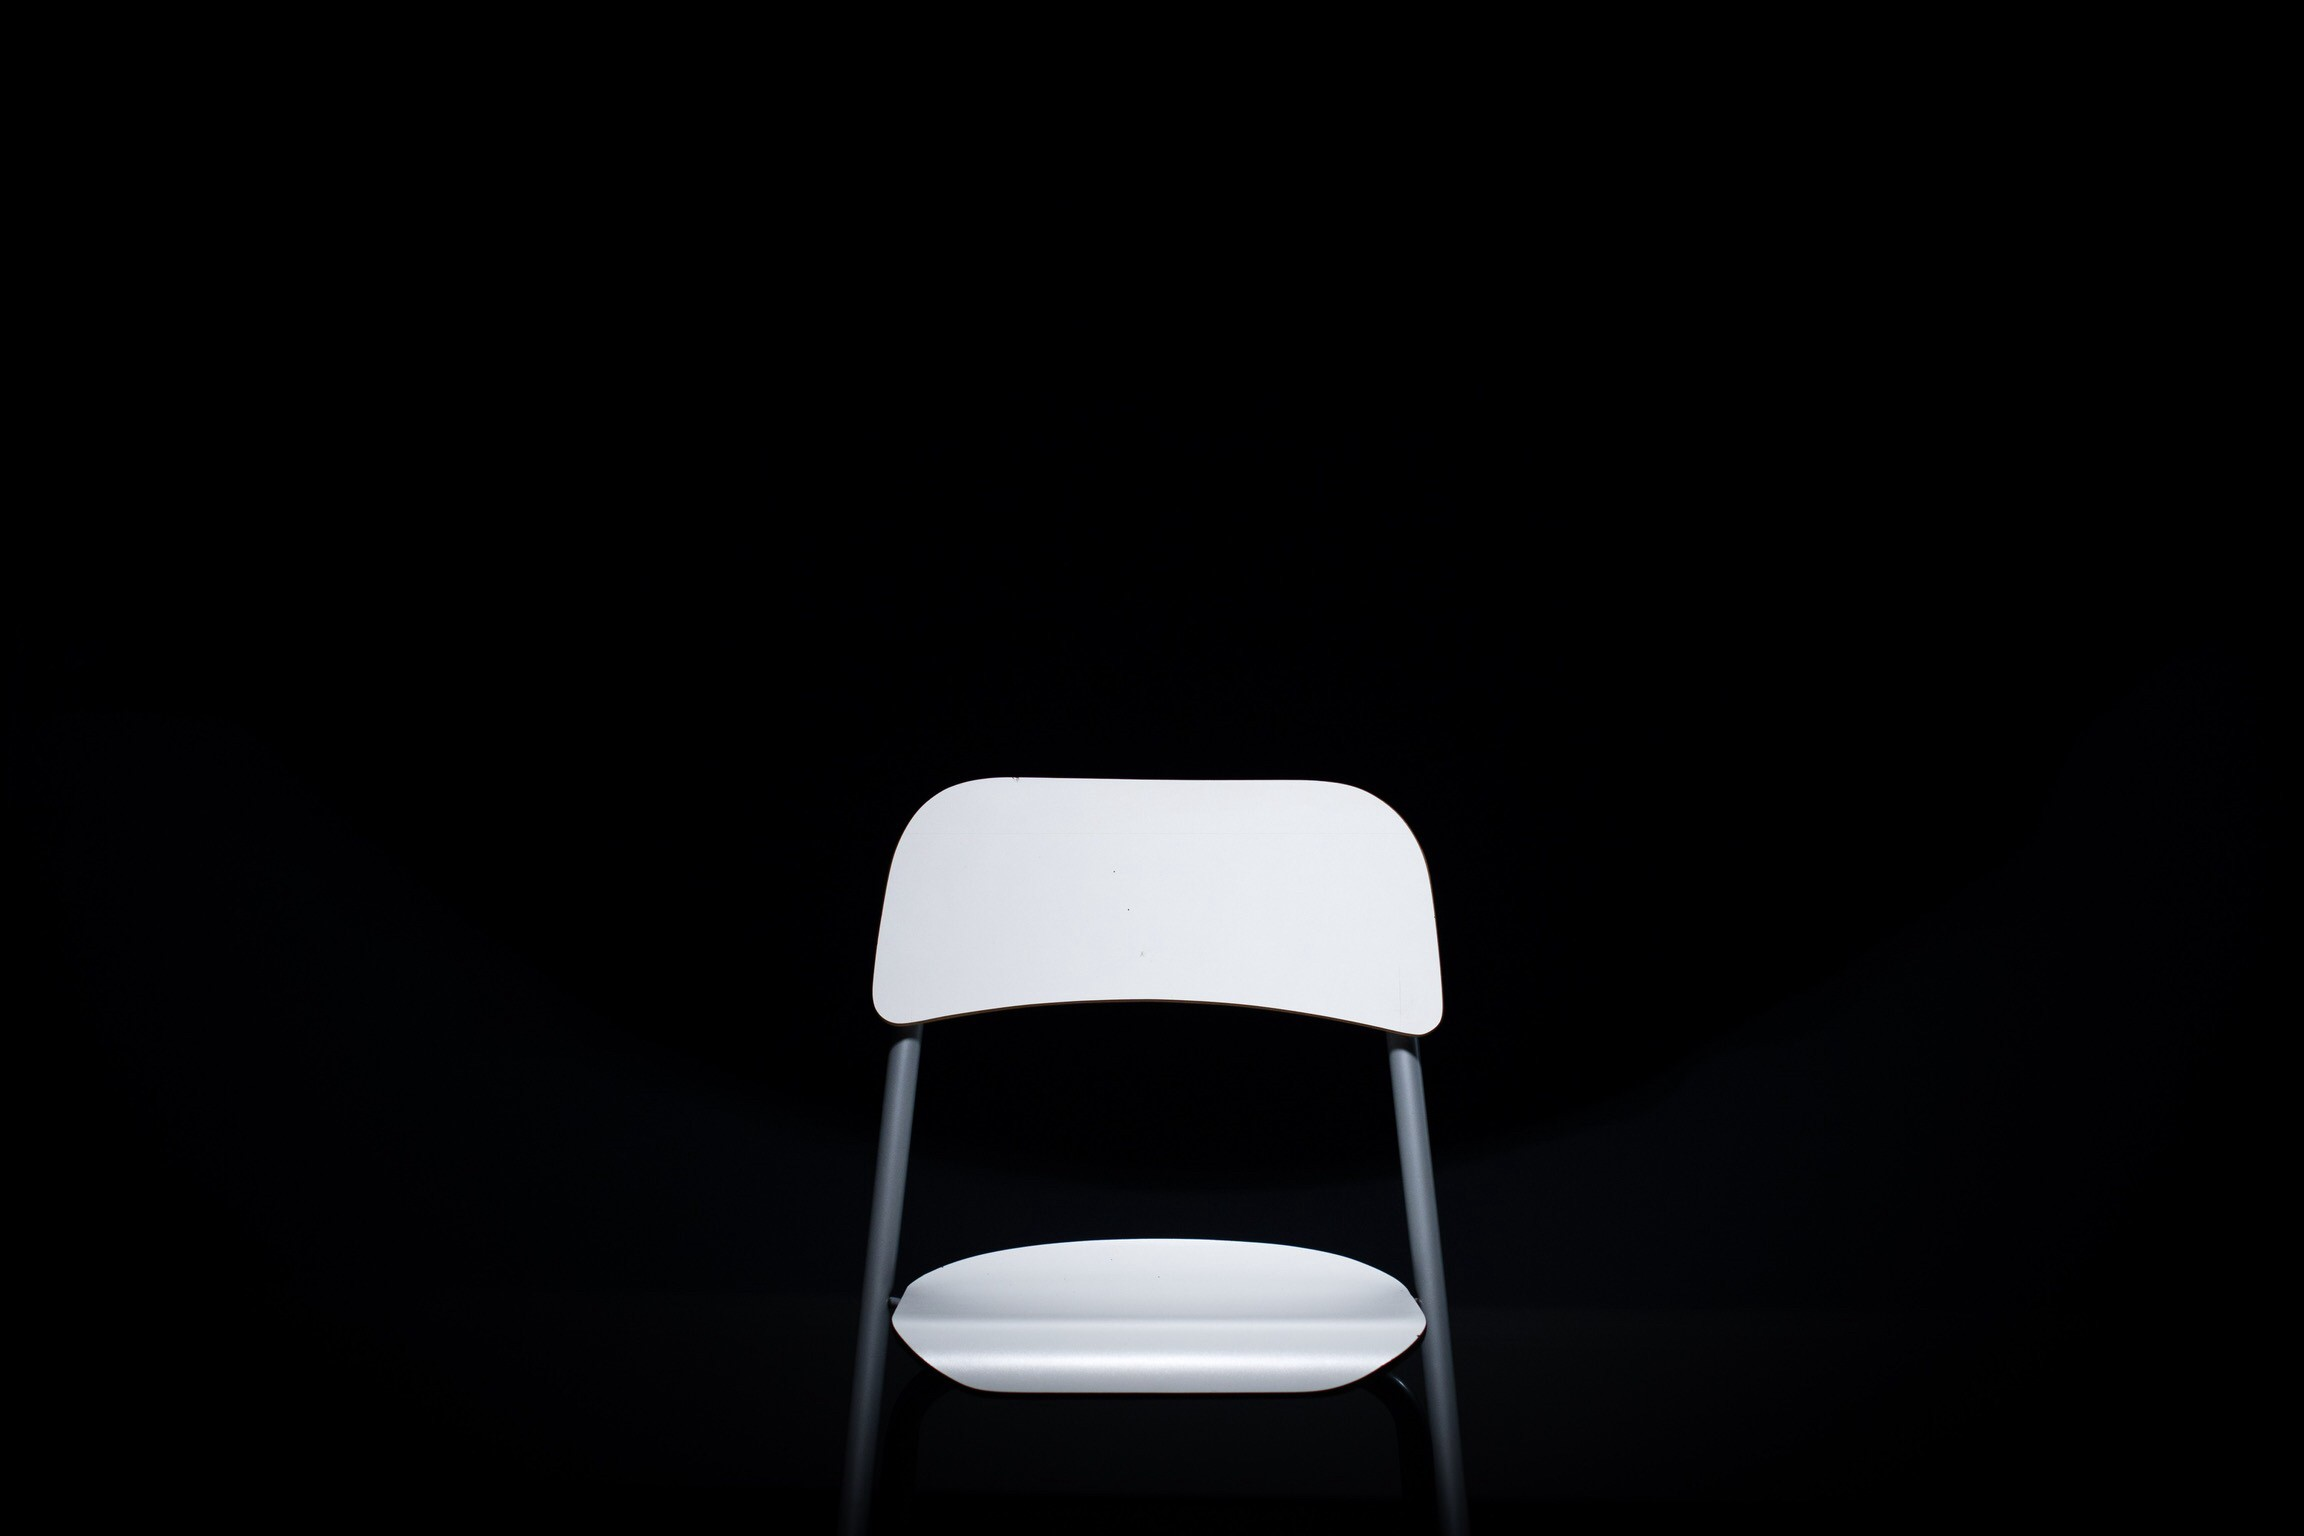 An image of an empty chair